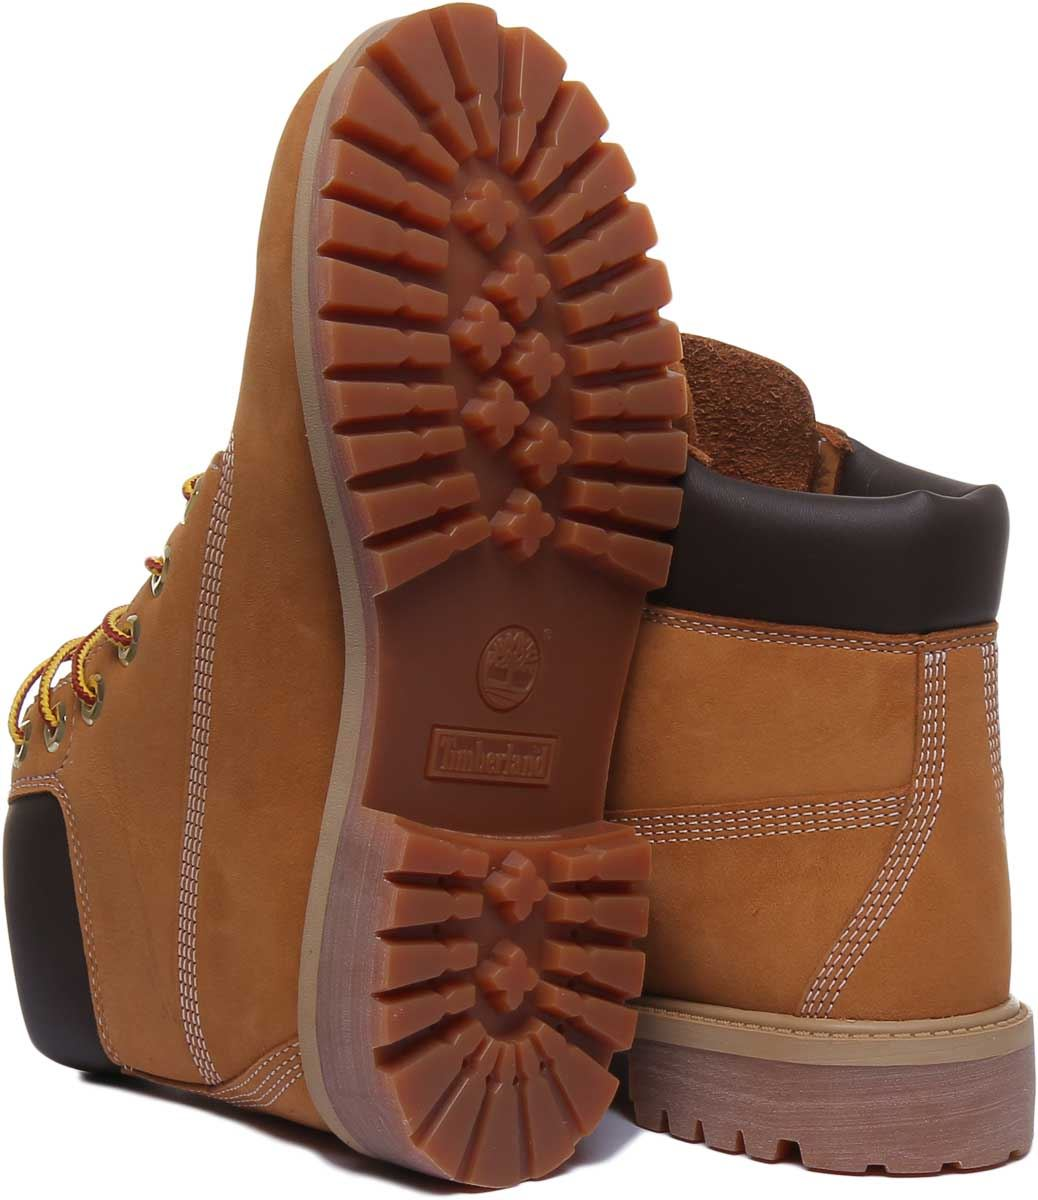 thumbnail 10 - Timberland-12909-Juniors-6-Inch-Premium-Lace-Up-In-Wheat-Size-UK-3-7